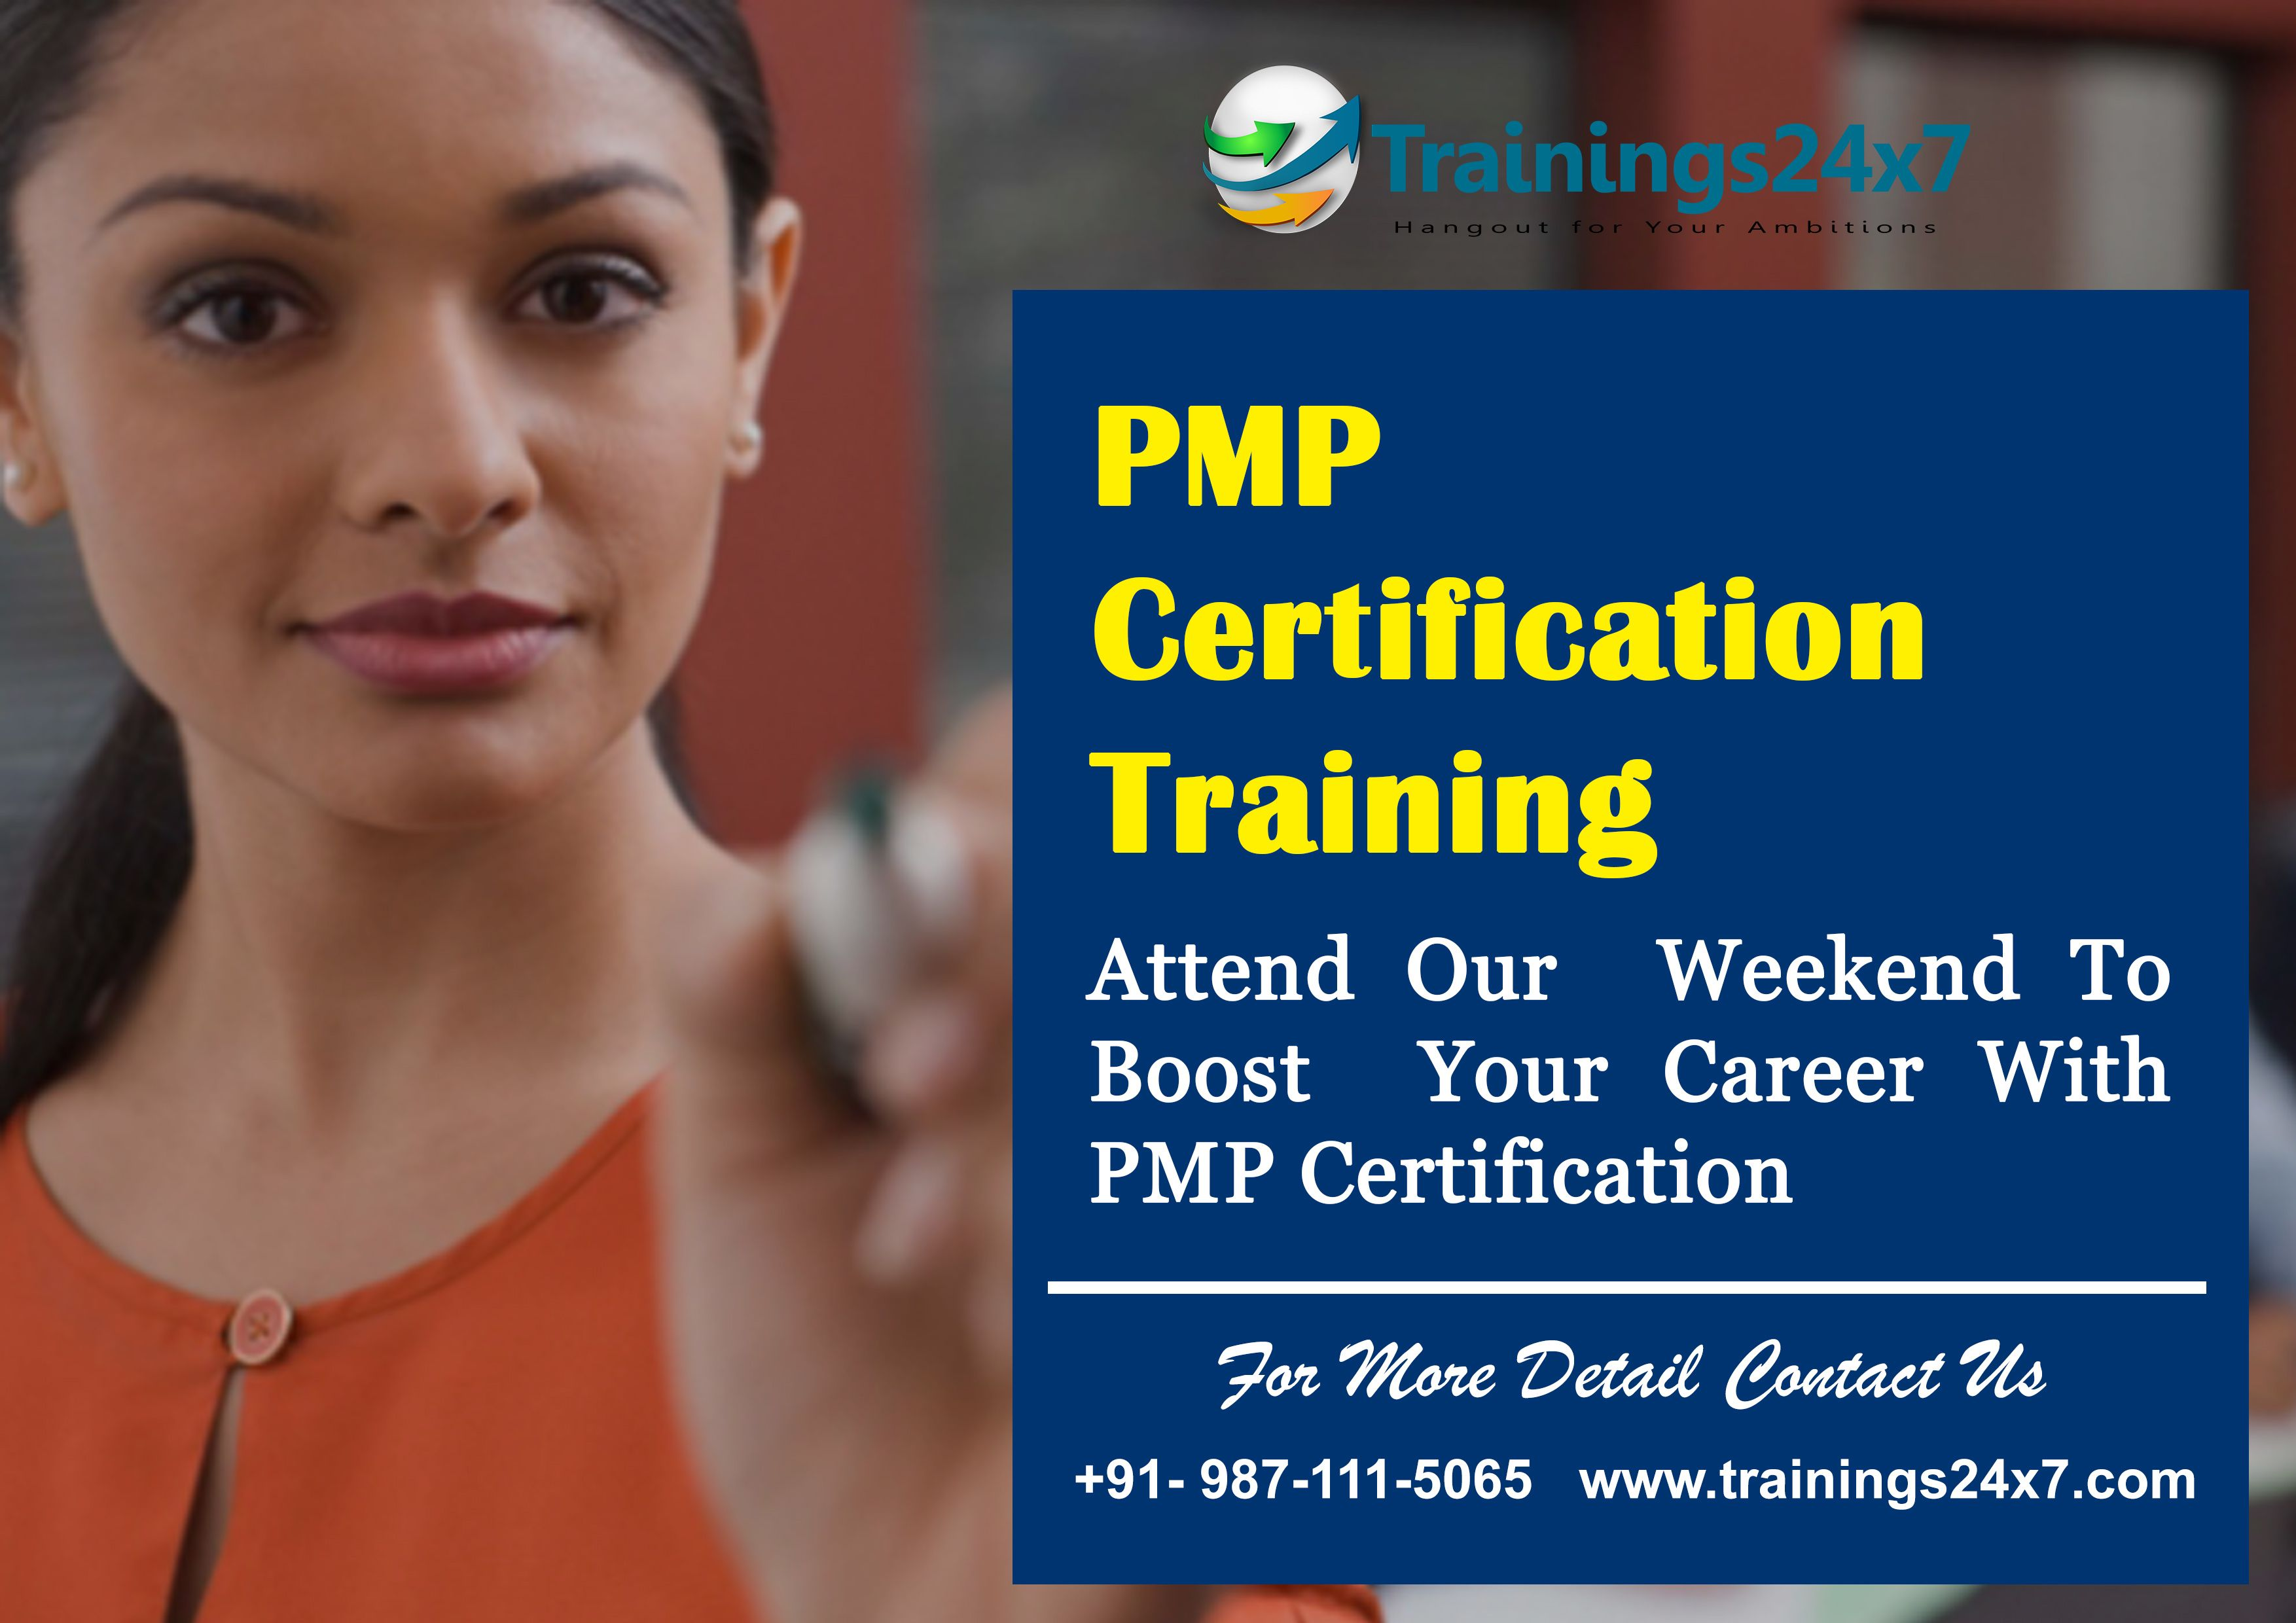 Pmp certification training boost your career with trainings24x7 pmp certification training boost your career with trainings24x7 get weekend classes 4 days training 1betcityfo Images